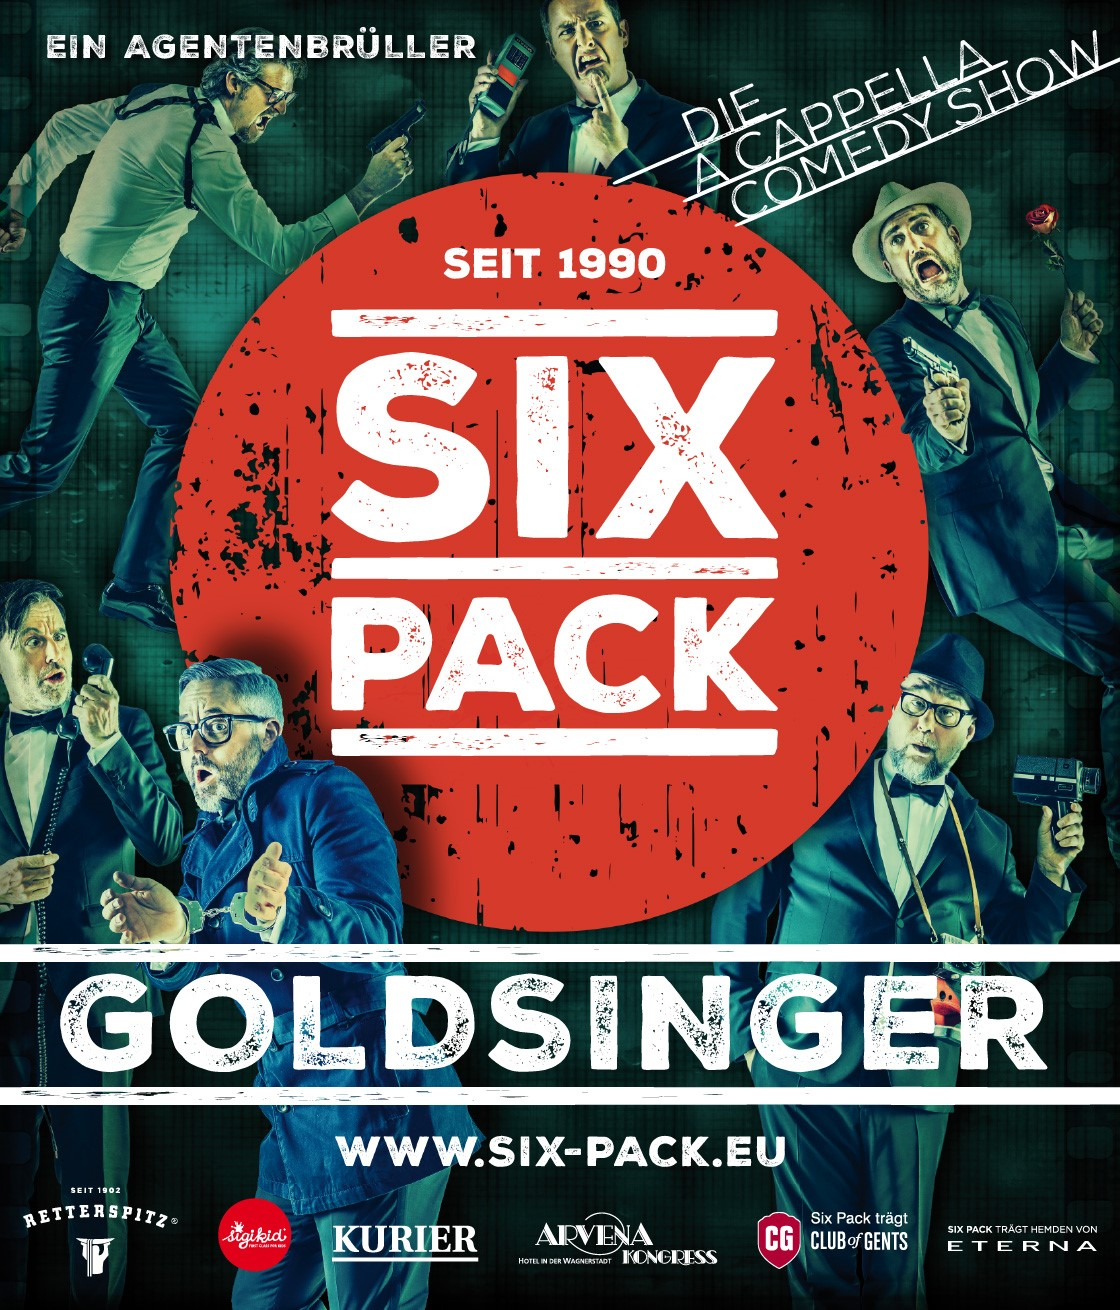 Image for SIX PACK - DIE A CAPPELLA COMEDY SHOW - DIE NEUE SHOW